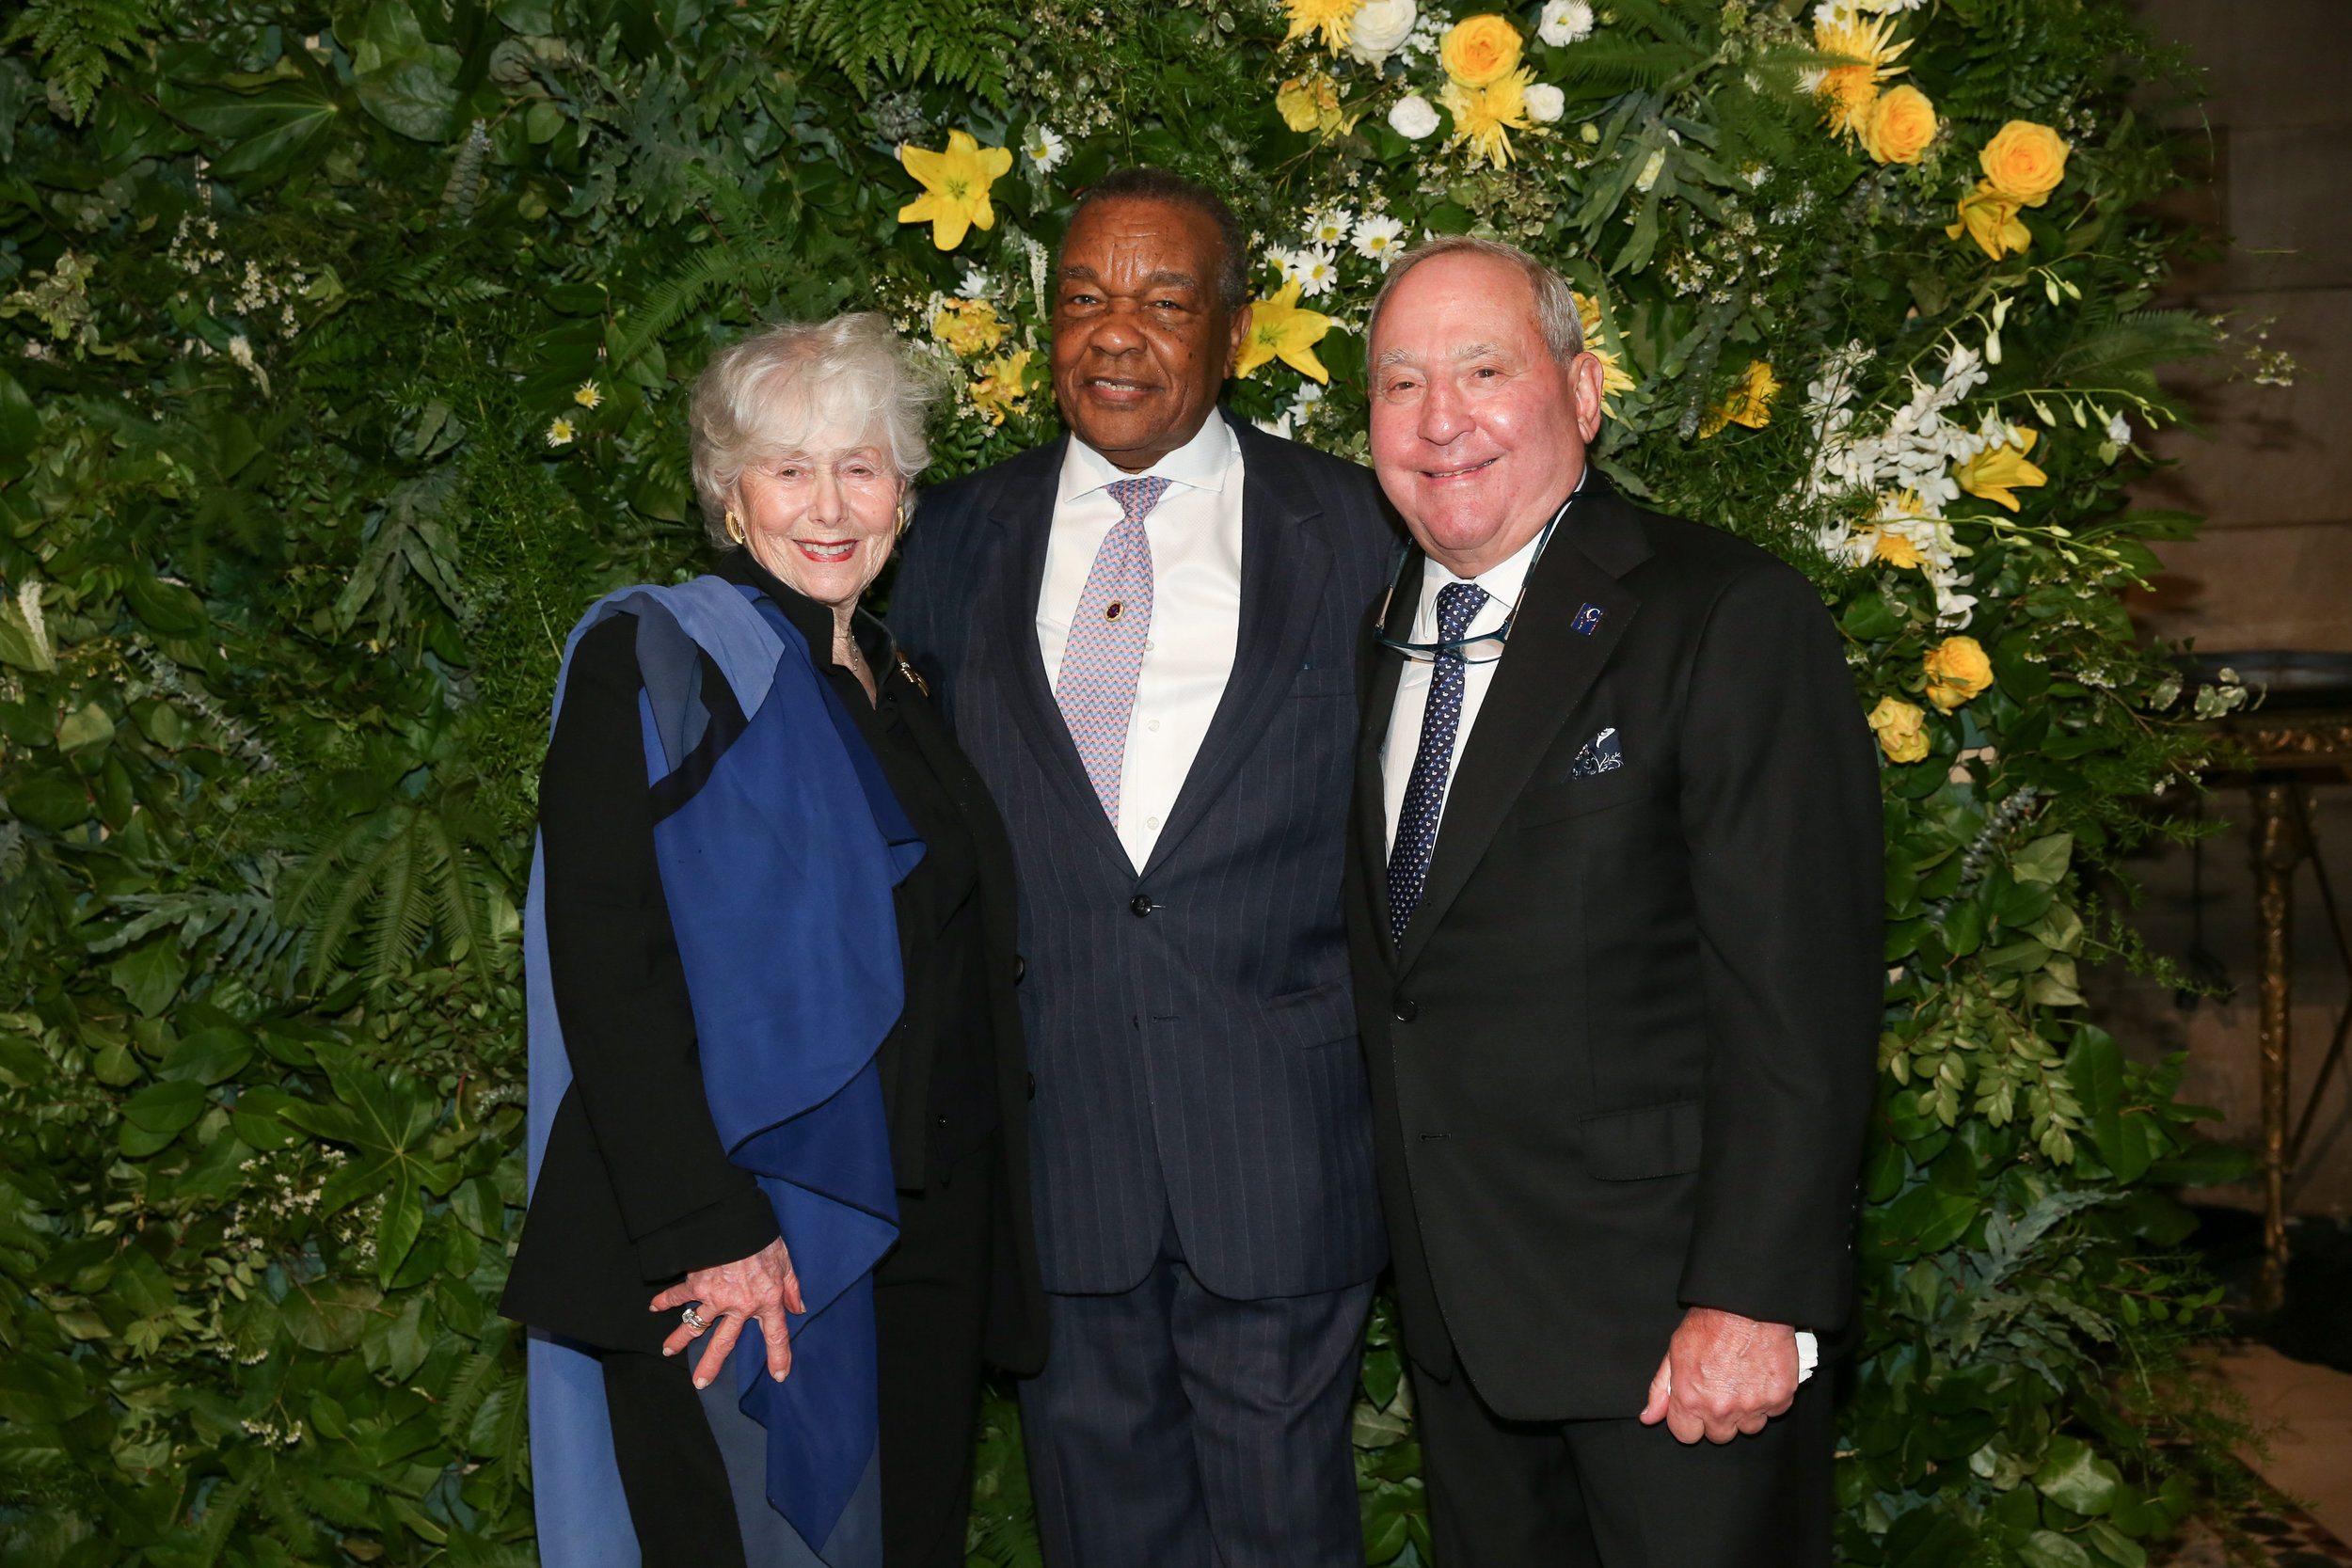 Paula Lunder, David Driskell, Peter Lunder